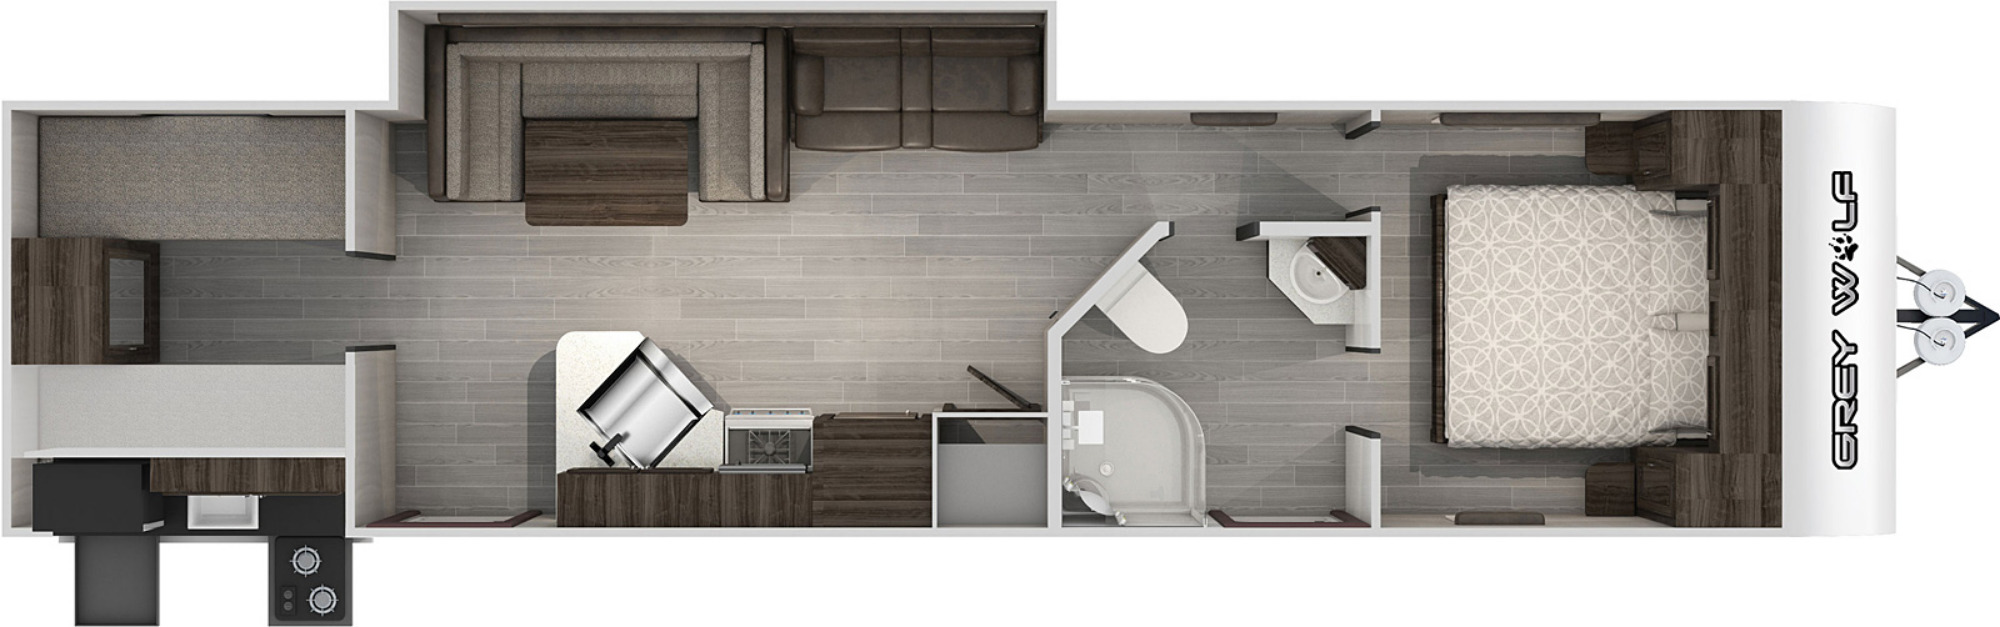 View Floor Plan for 2021 FOREST RIVER GREY WOLF 29TEW